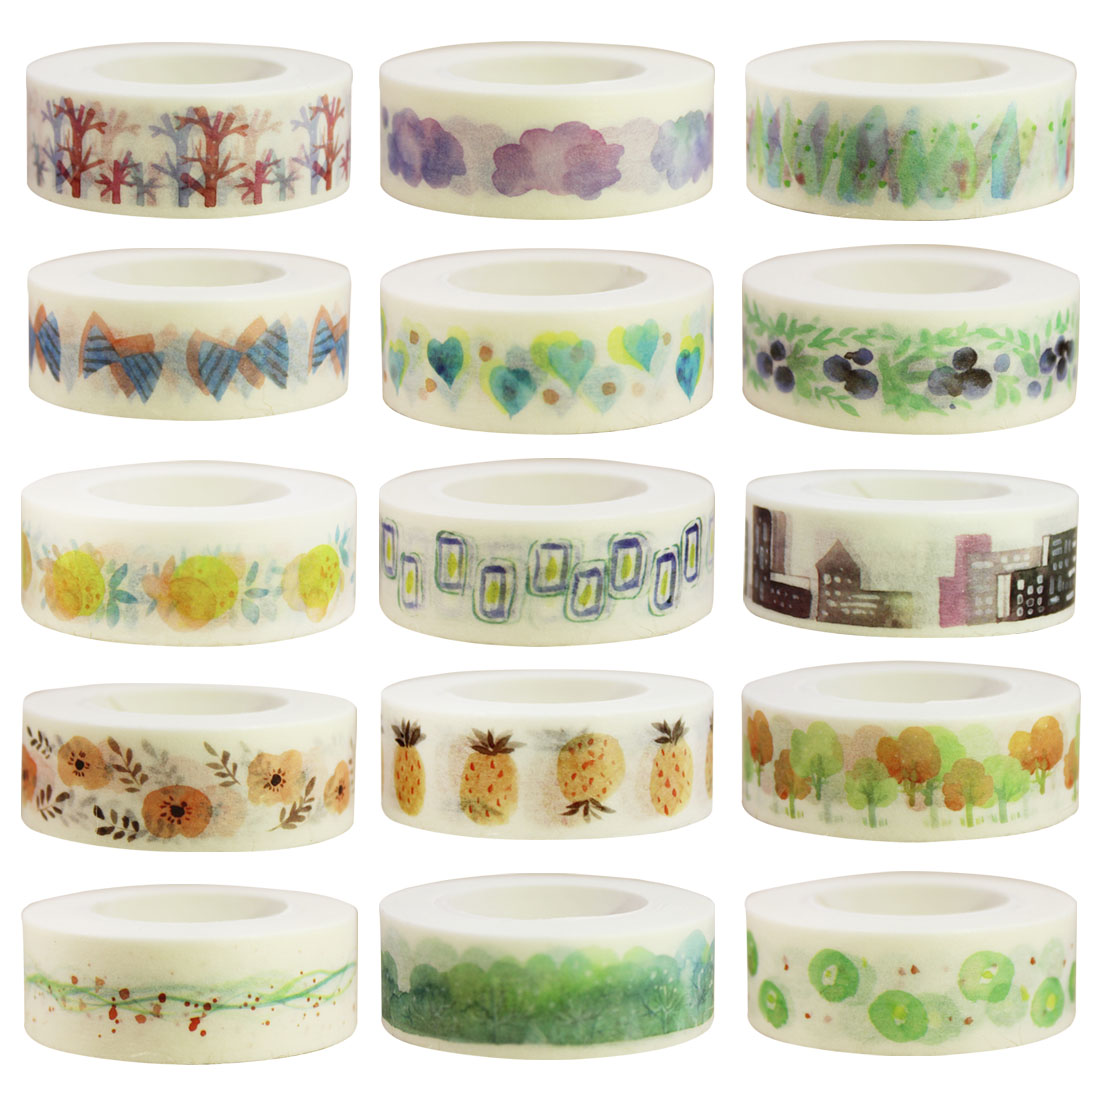 Cute Kawaii Fruits Flowers Japanese Masking Washi Tape Decorative Adhesive Tape Decora DIY Diary Scrapbooking Sticker Label